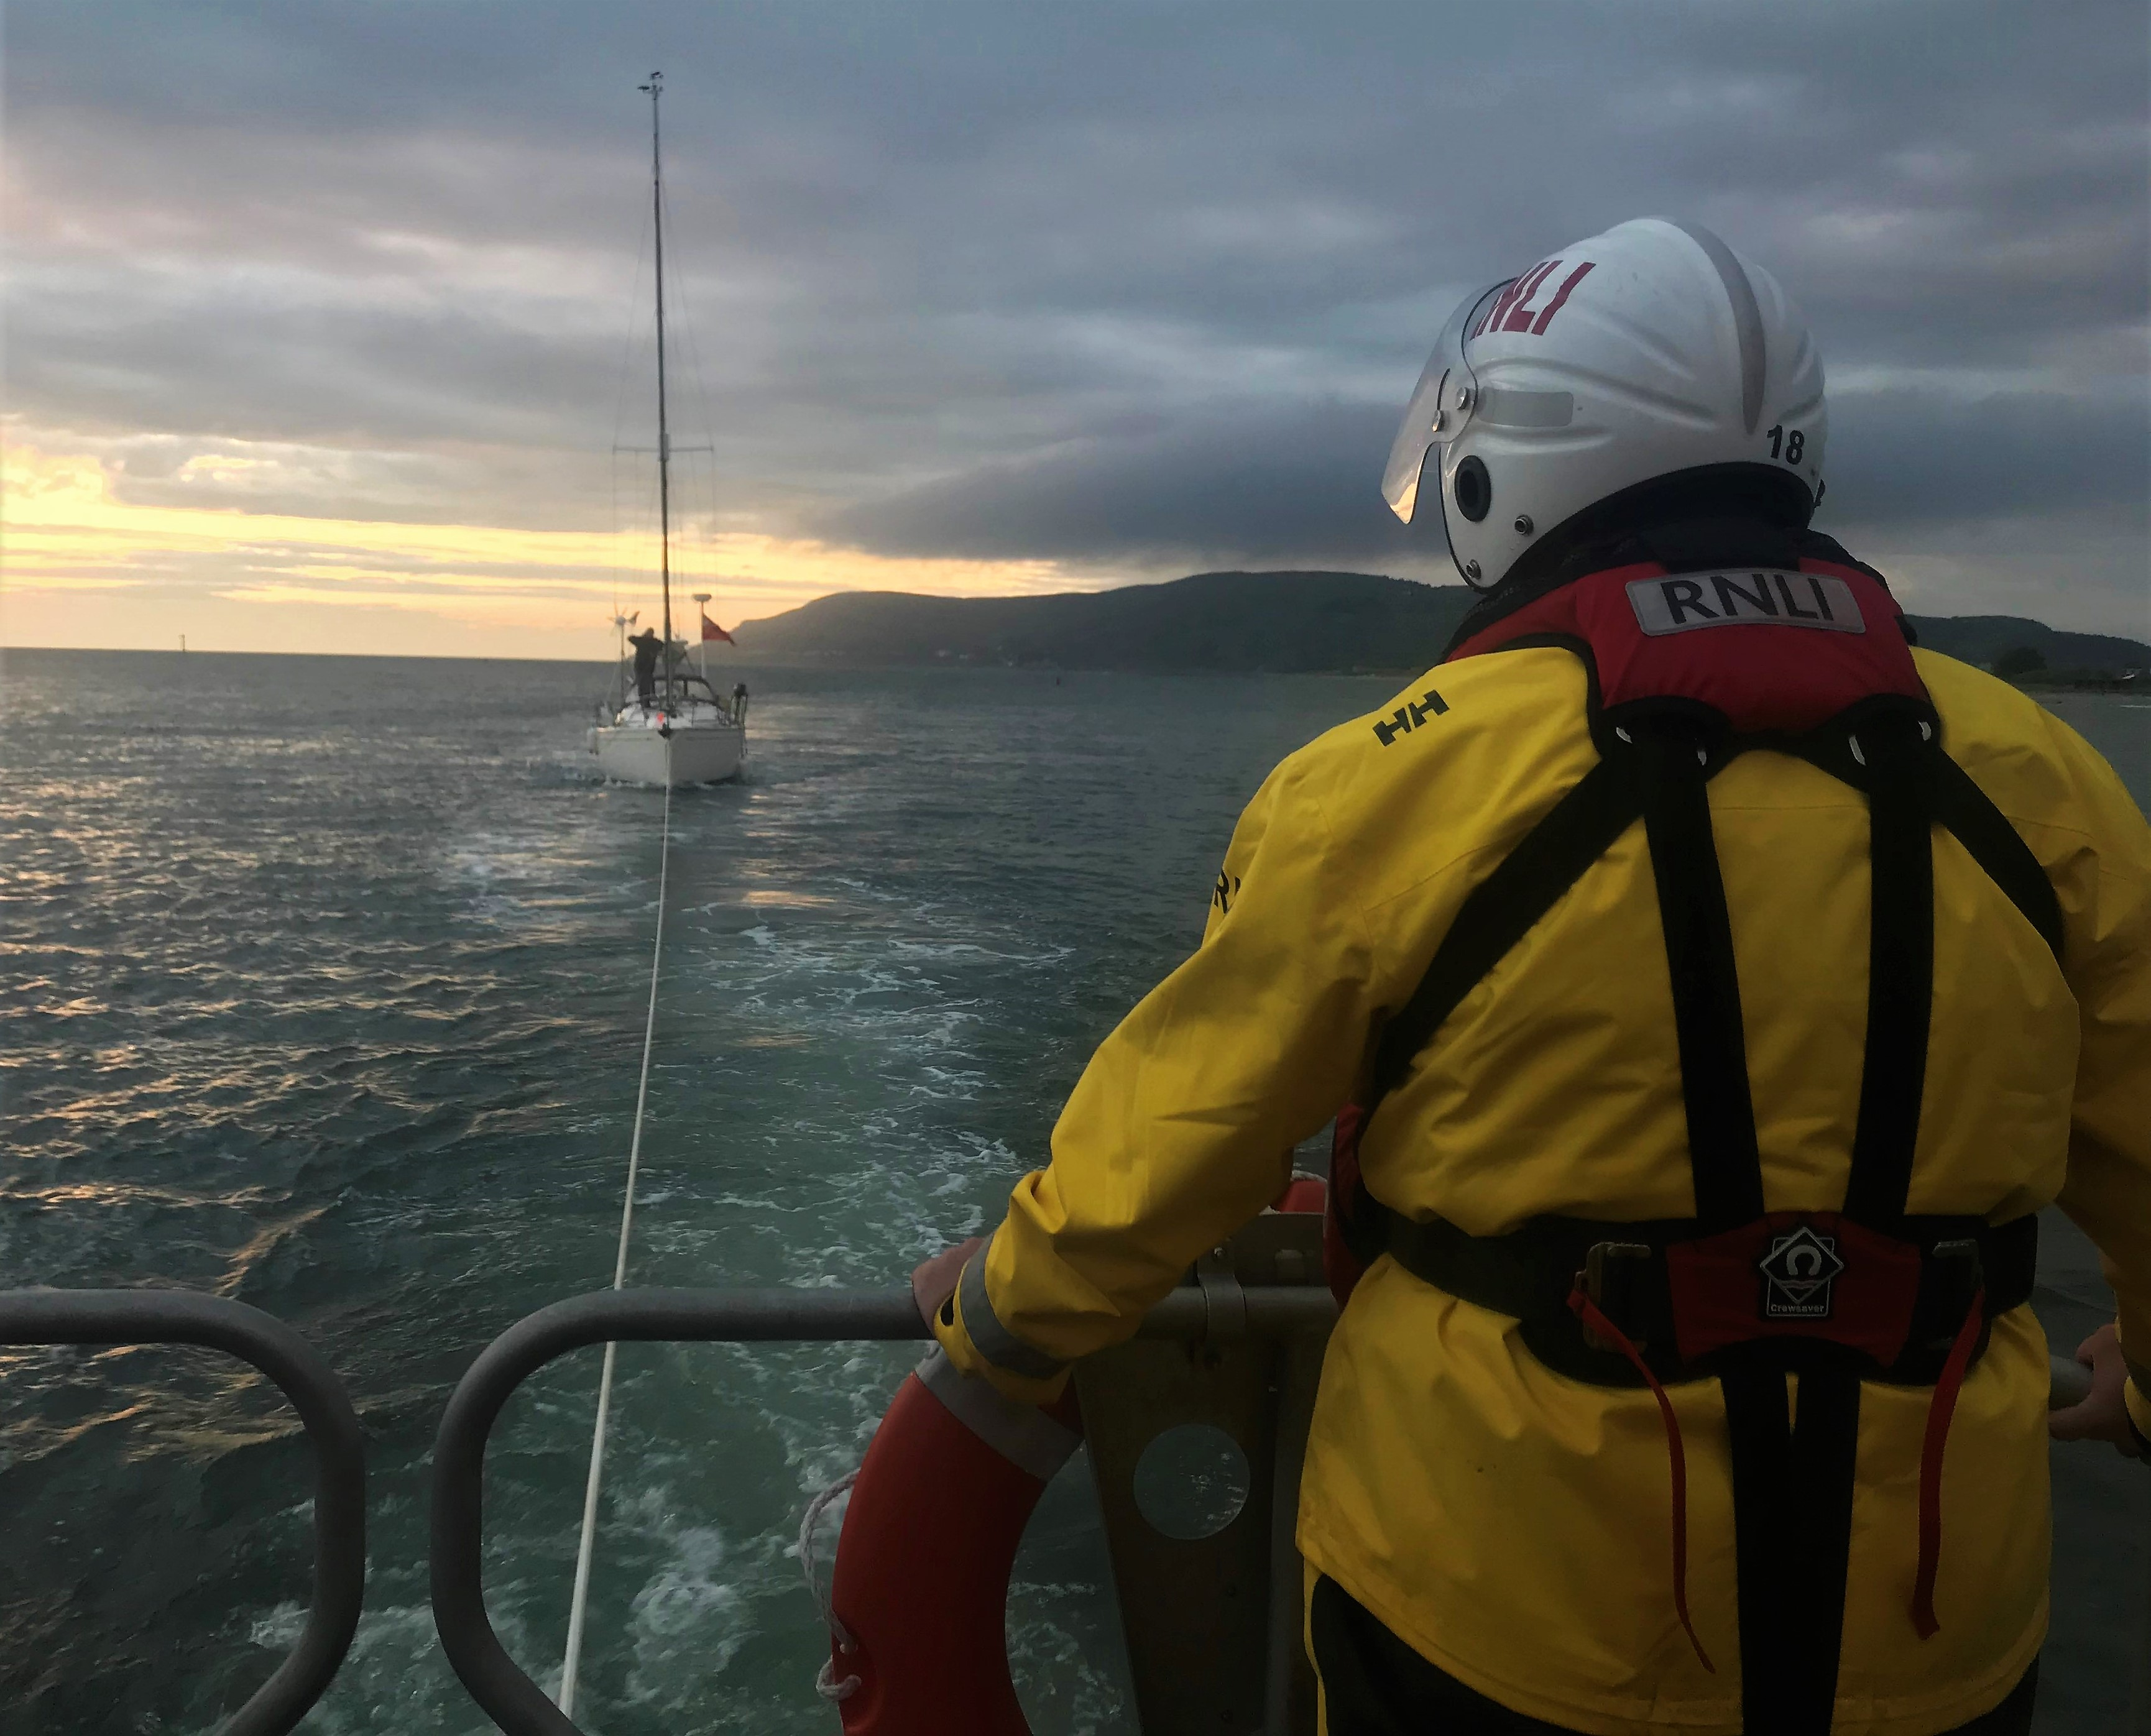 Llandudno's all-weather lifeboat William F Yates was called out by Holyhead Coastguard and launched at 7.36 pm Sunday to go to the assistance of a 30ft yacht which had encountered mechanical difficulties approximately three miles north of the Great Orme.